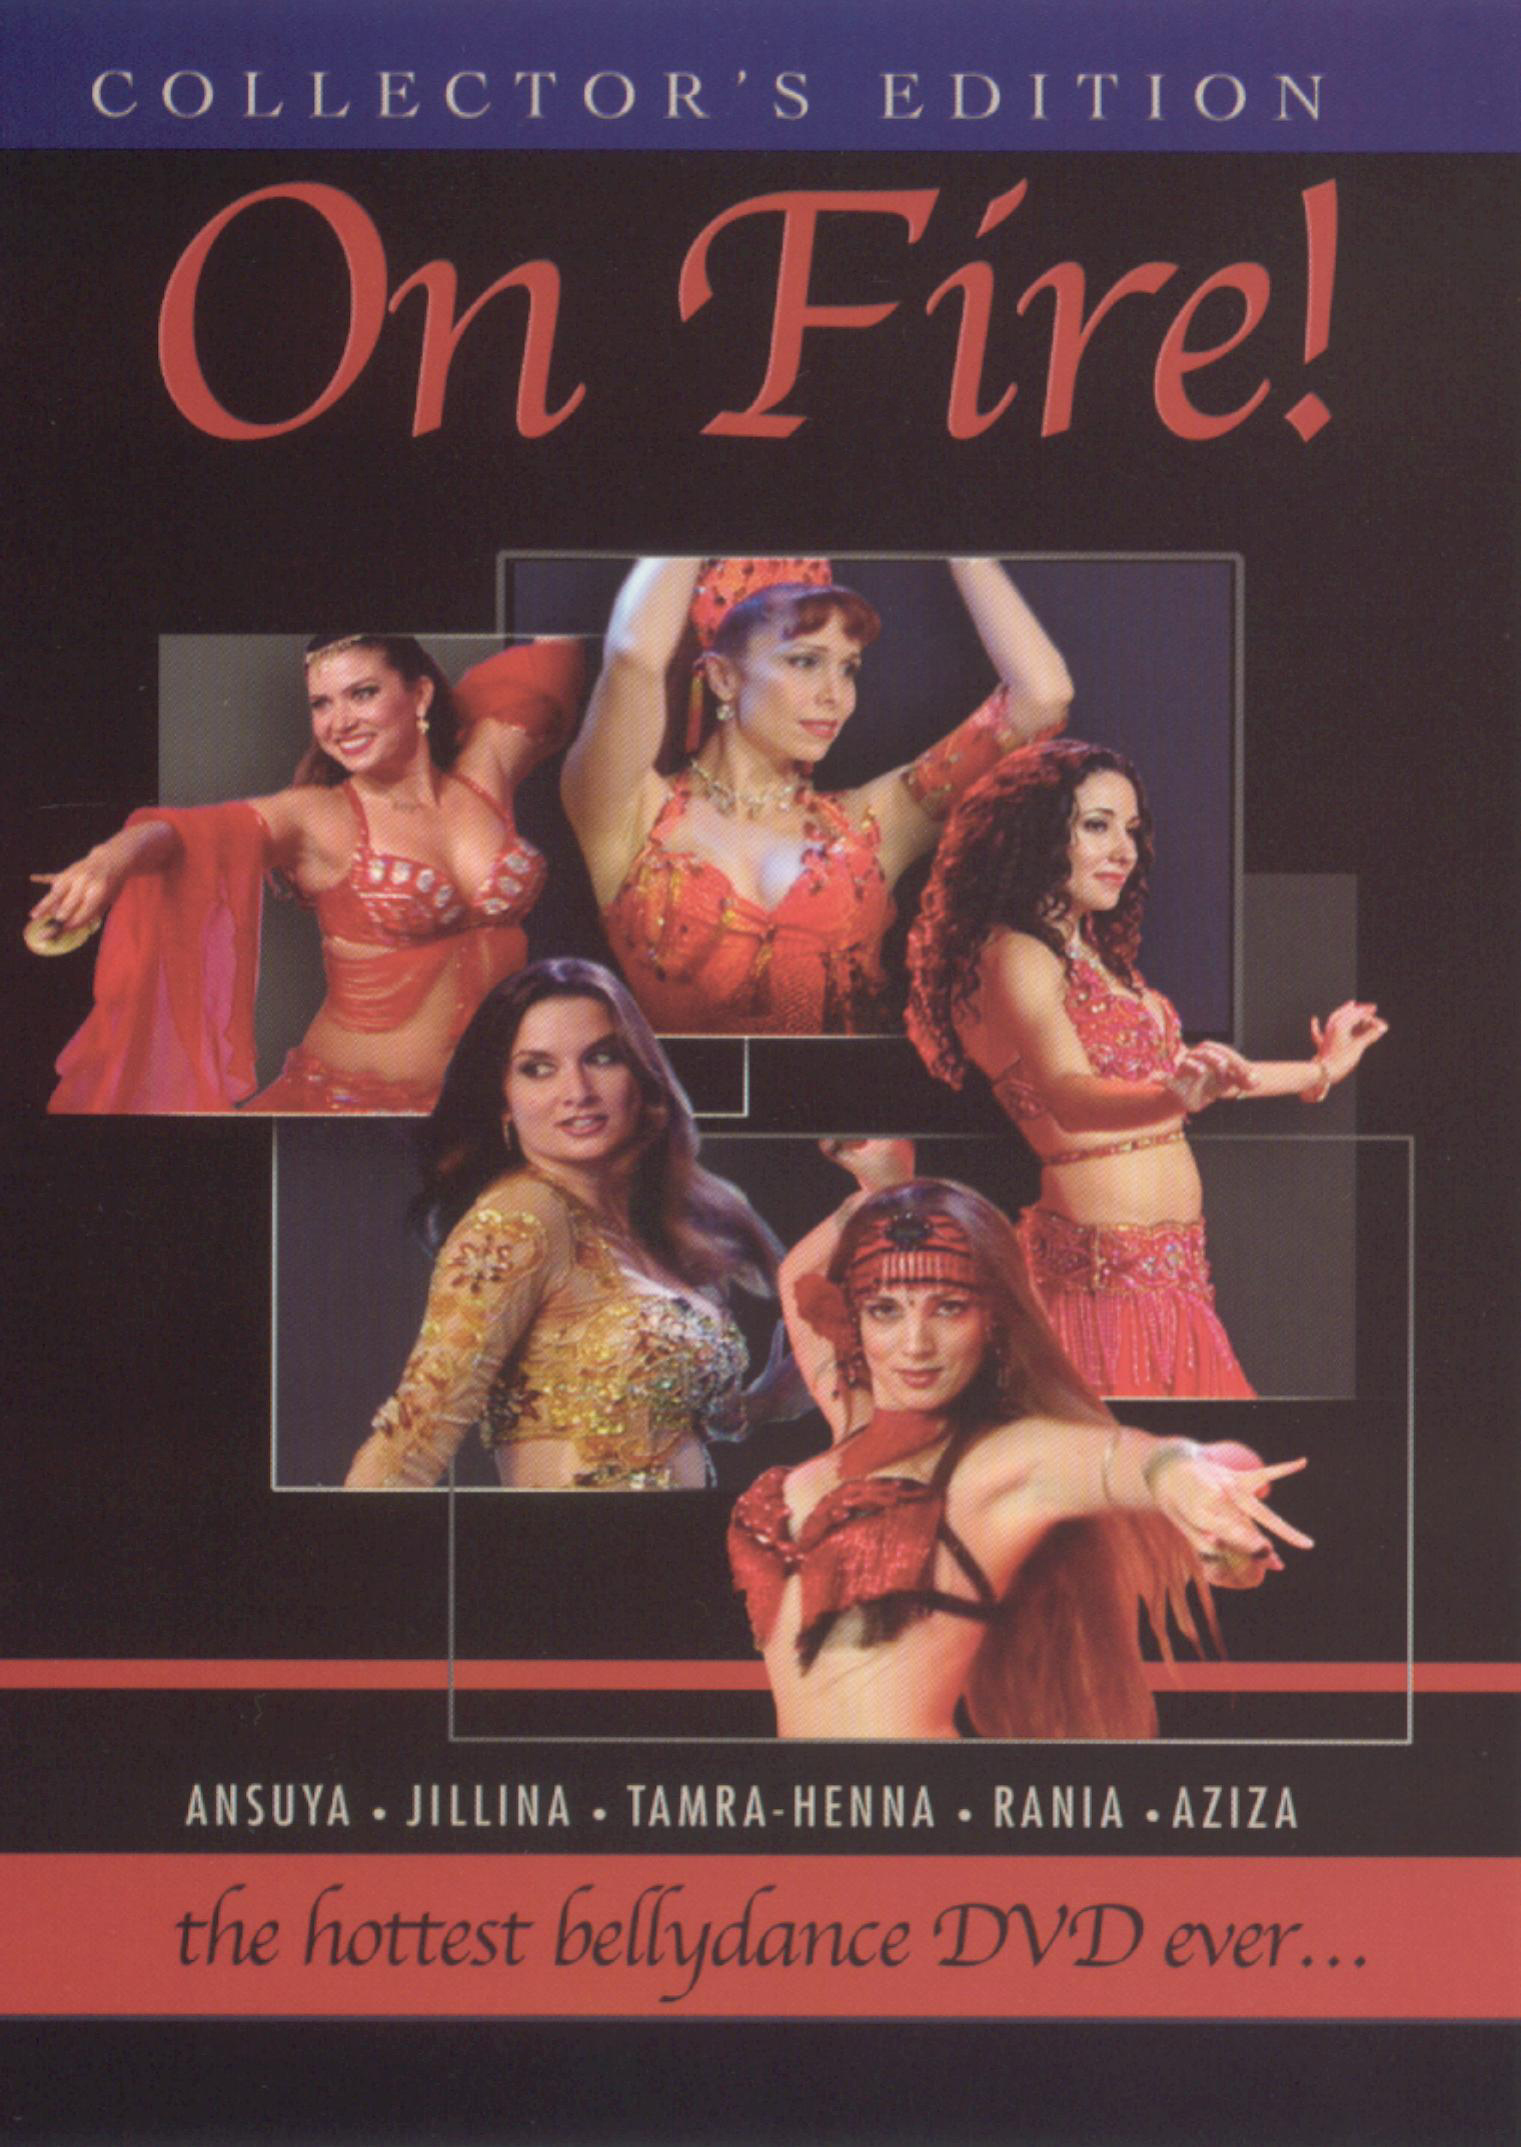 On Fire! The Hottest Bellydance DVD Ever